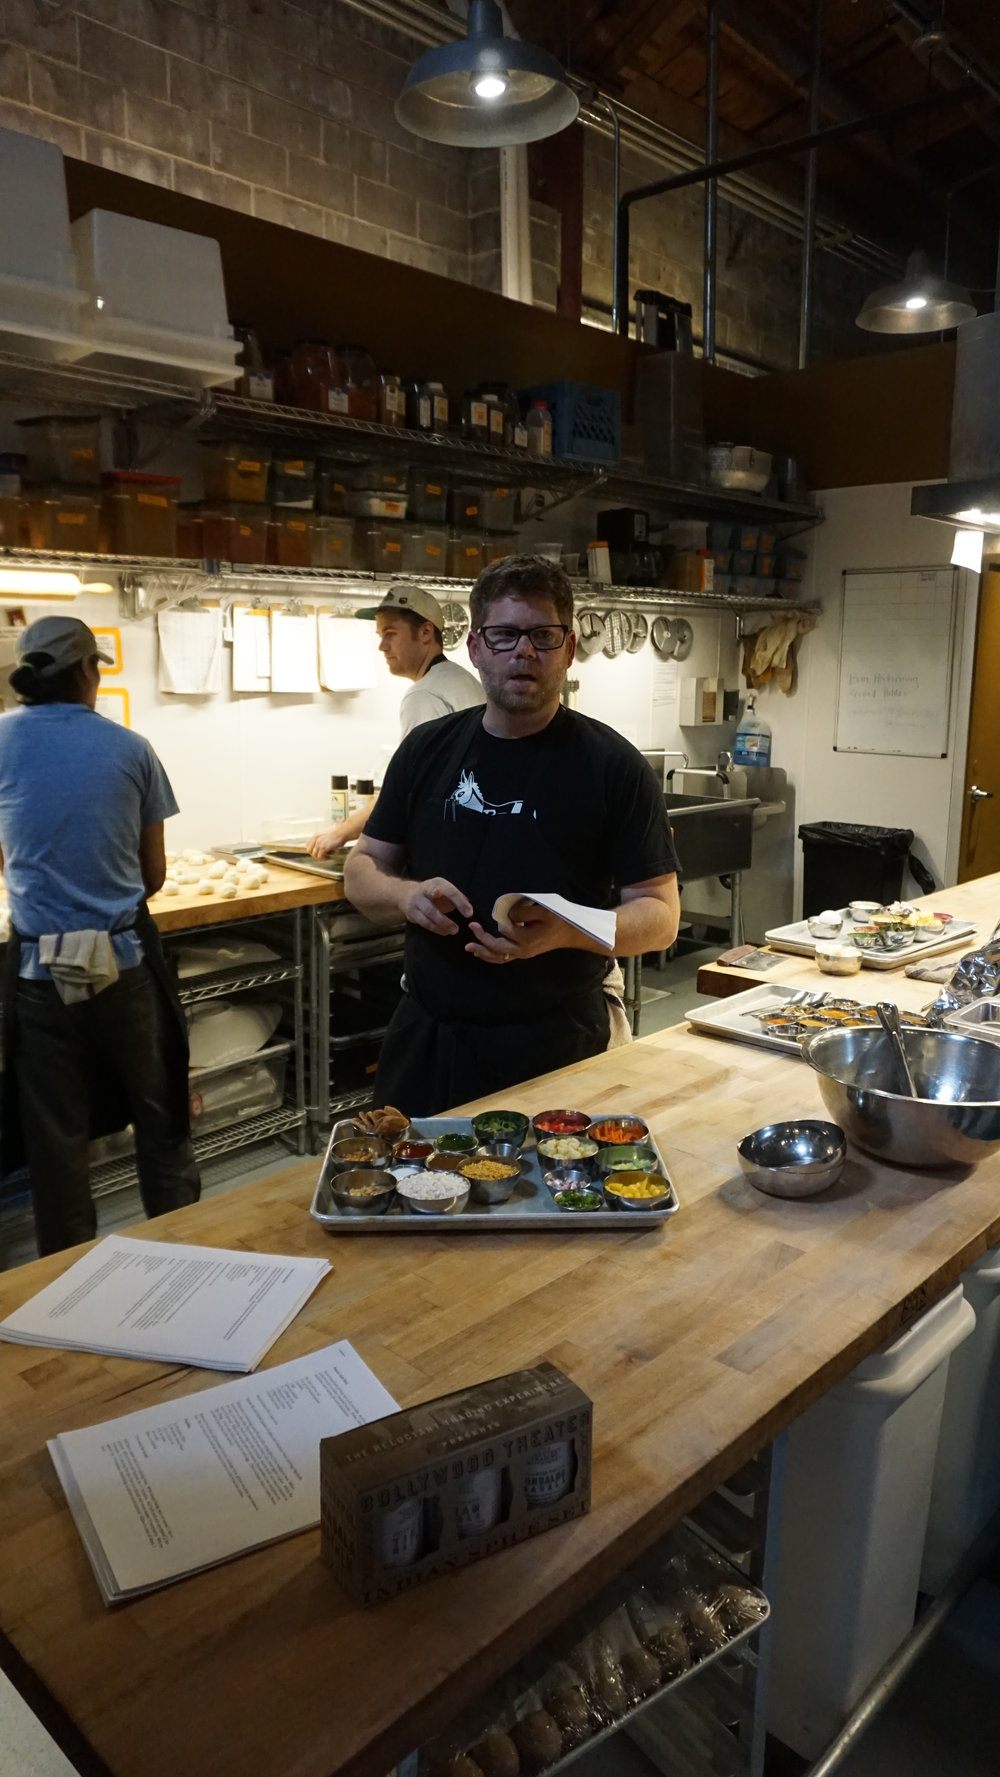 Chef Troy MacLarty goes over a menu item and its numerous ingredients at the Division kitchen of Bollywood Theater PDX. Viki Eierdam